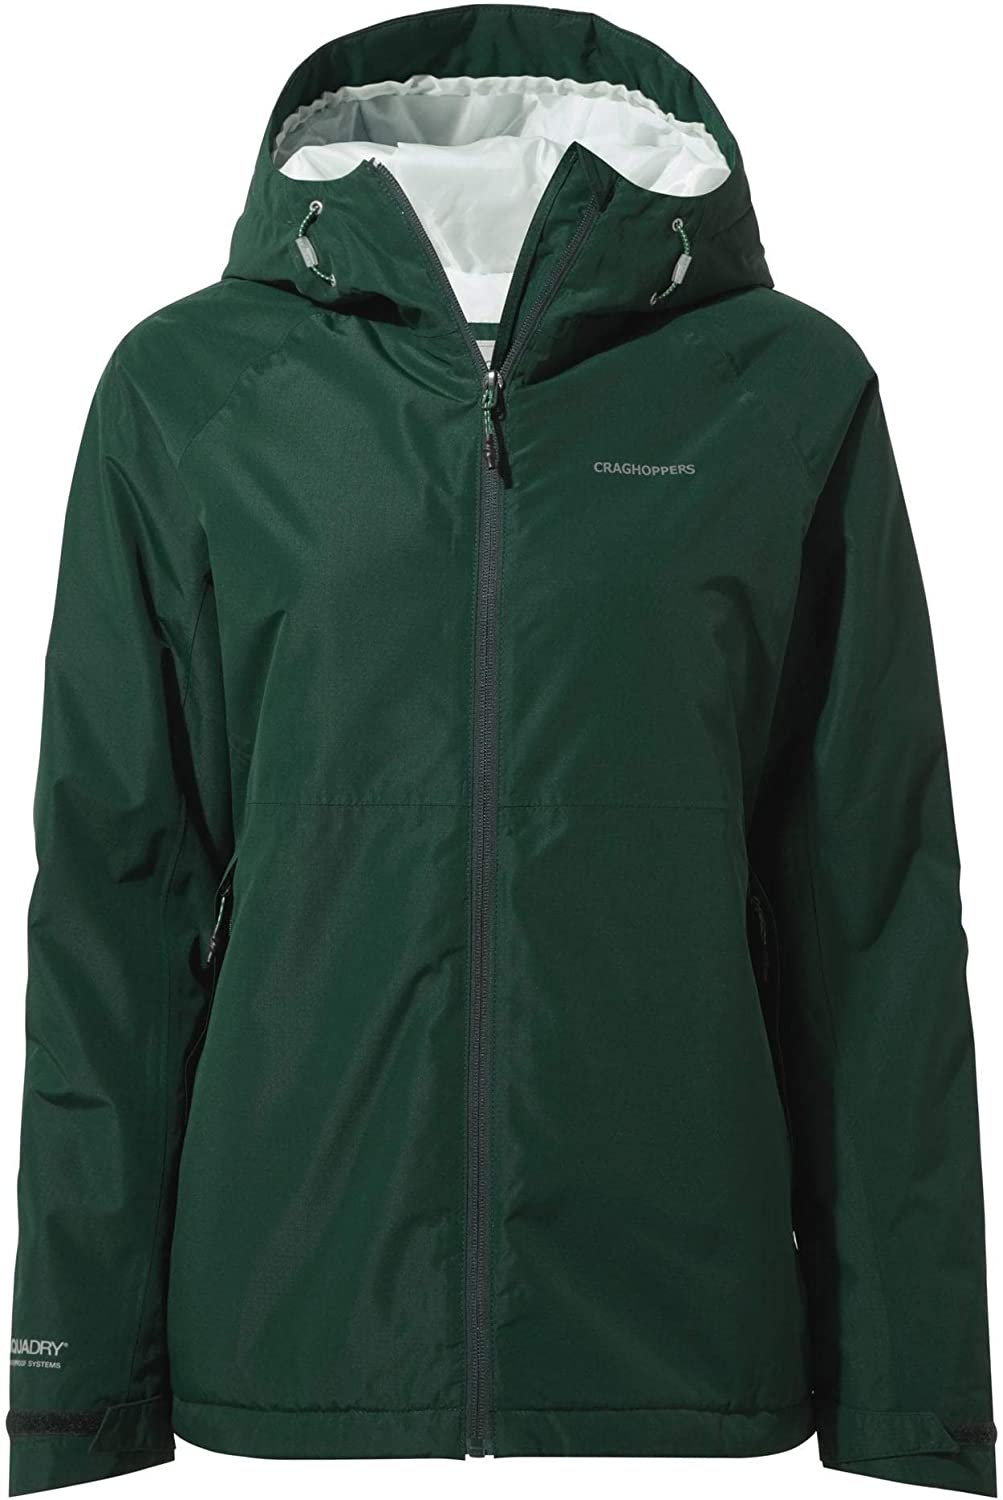 Craghoppers Womens Aurora Jackets Waterproof Insulated